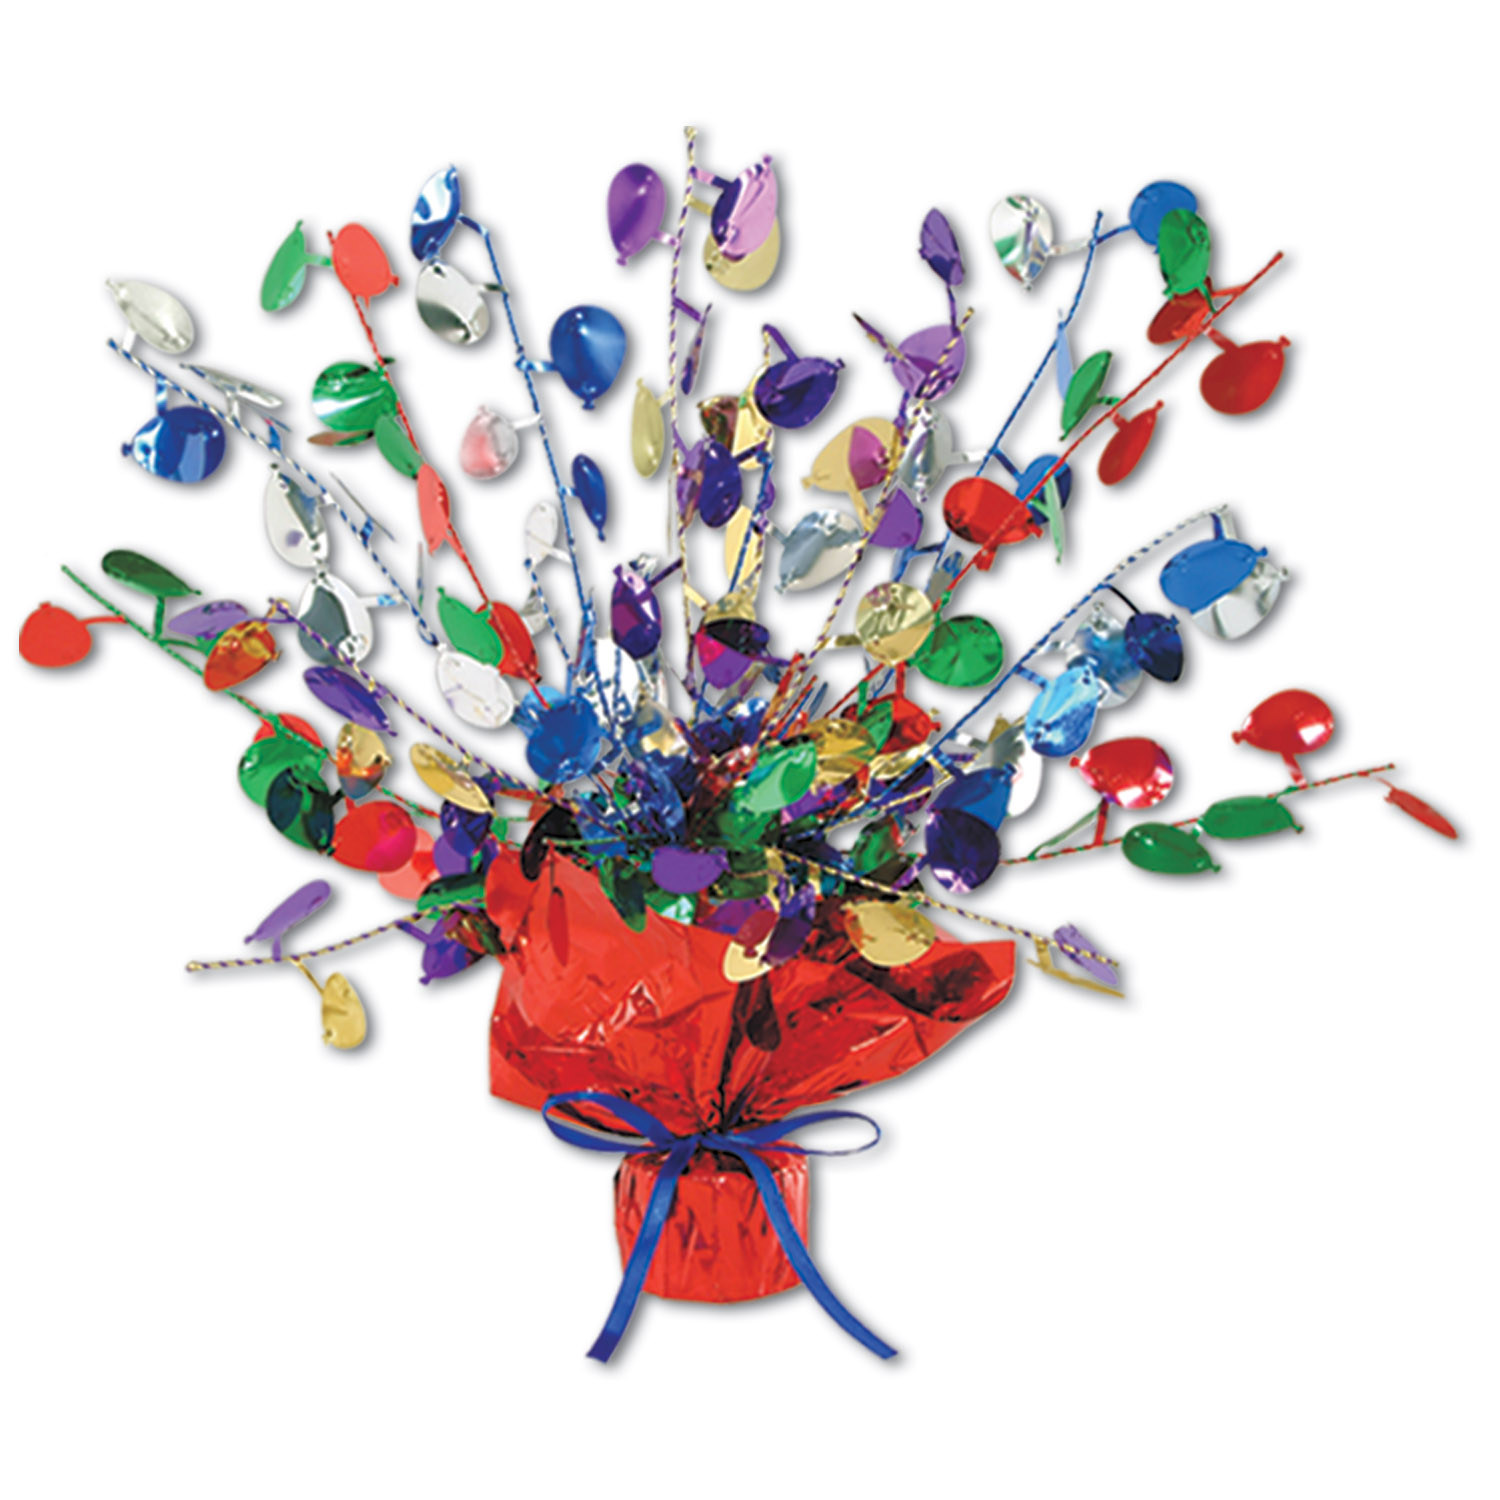 Balloon Gleam N Burst Centerpiece (Pack of 12) Balloon Gleam N Burst Centerpiece, decoration, centerpiece, new years eve, birthday, wholesale, inexpensive, bulk